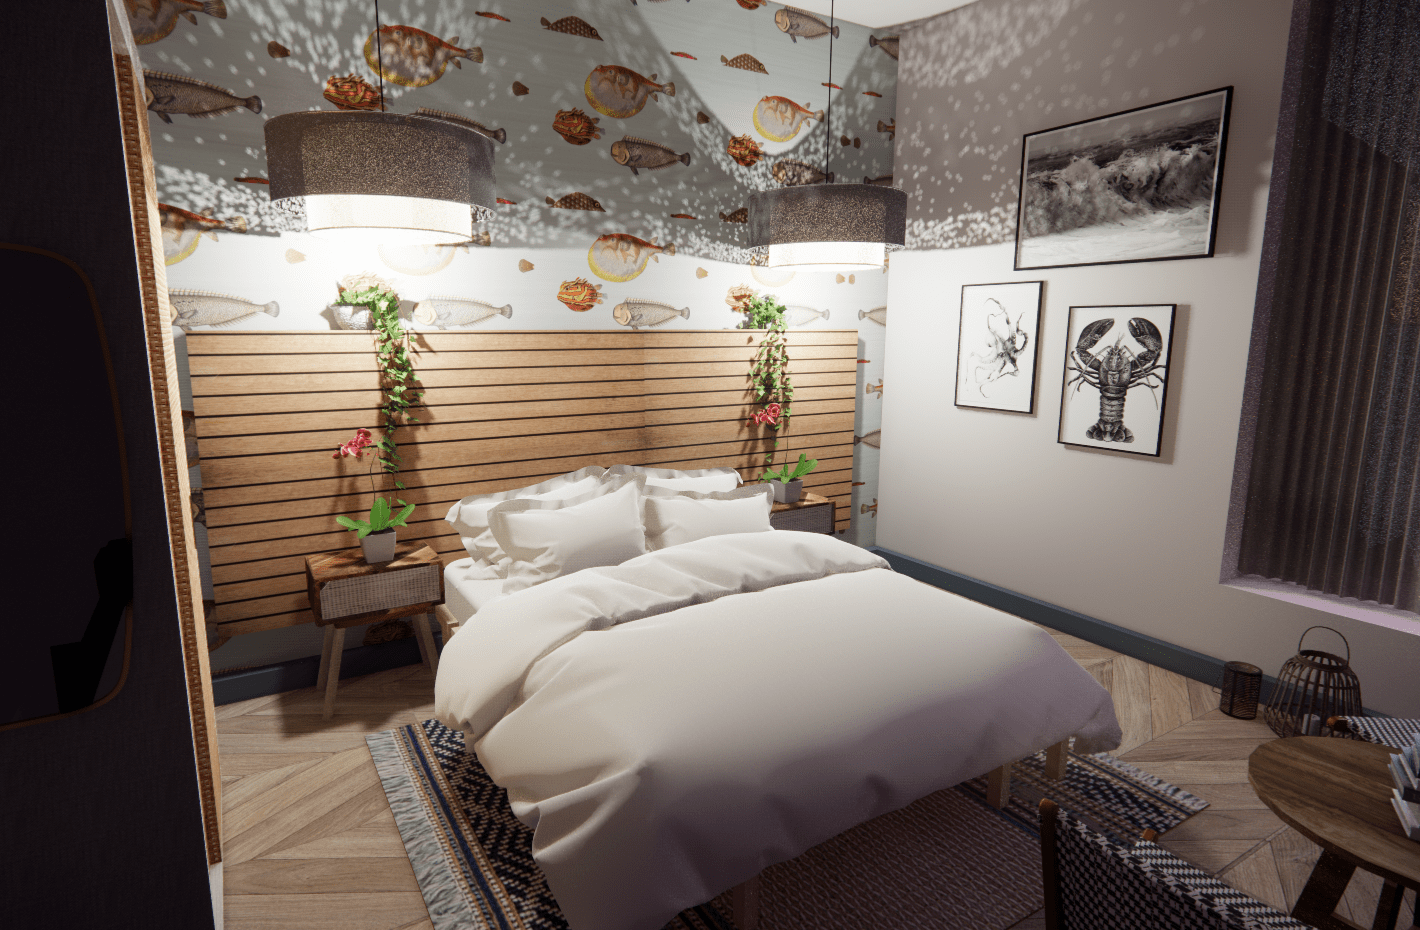 Grace Smart_2734820_assignsubmission_file_MIZU HOUSE FISH BEDROOM-min